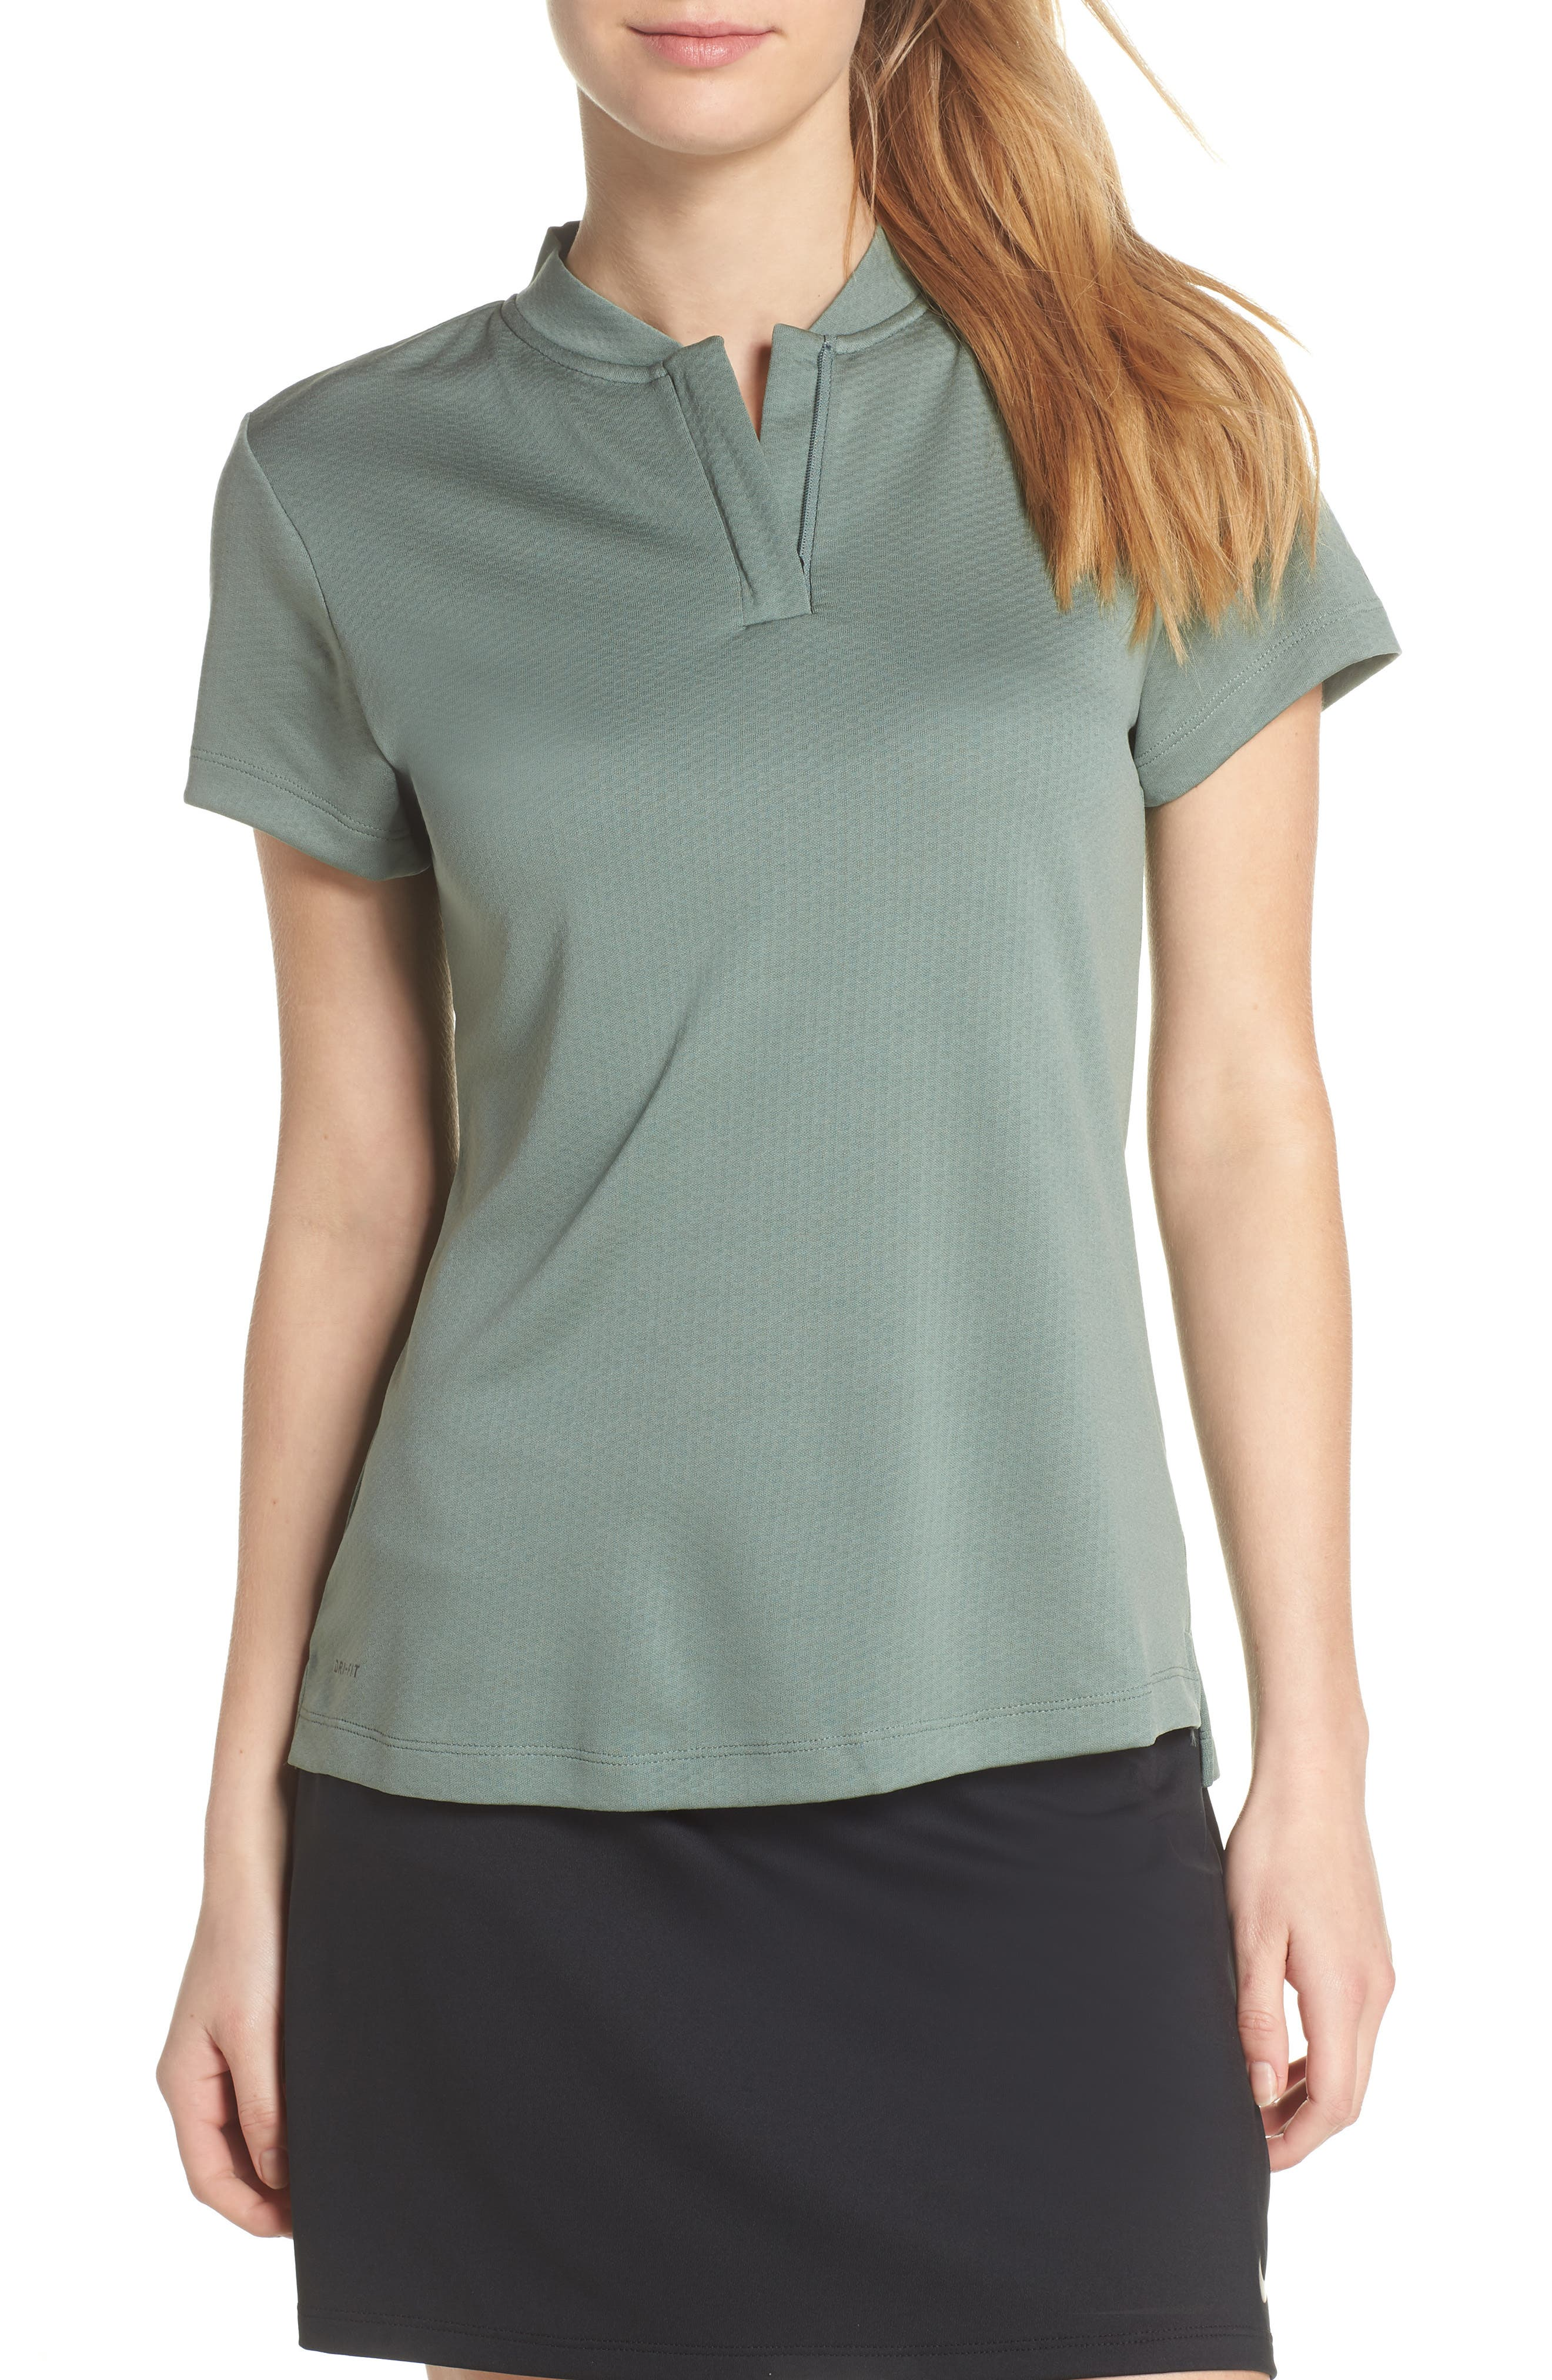 Dry Gold Polo,                         Main,                         color, Clay Green/ Black